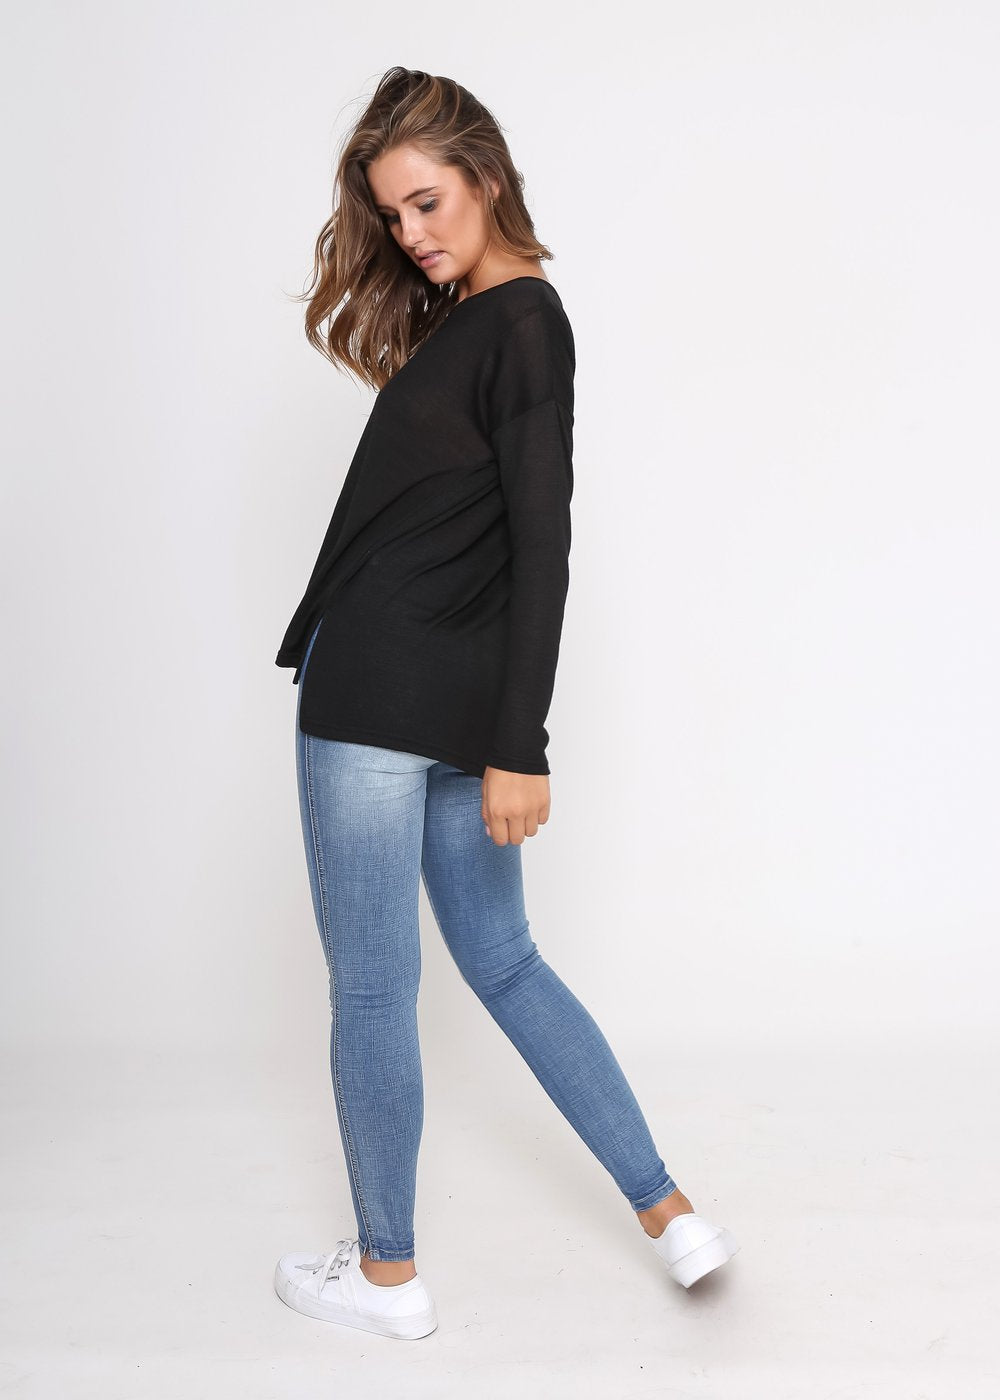 Milly Knit Top - Black - Kenzie Tenzie